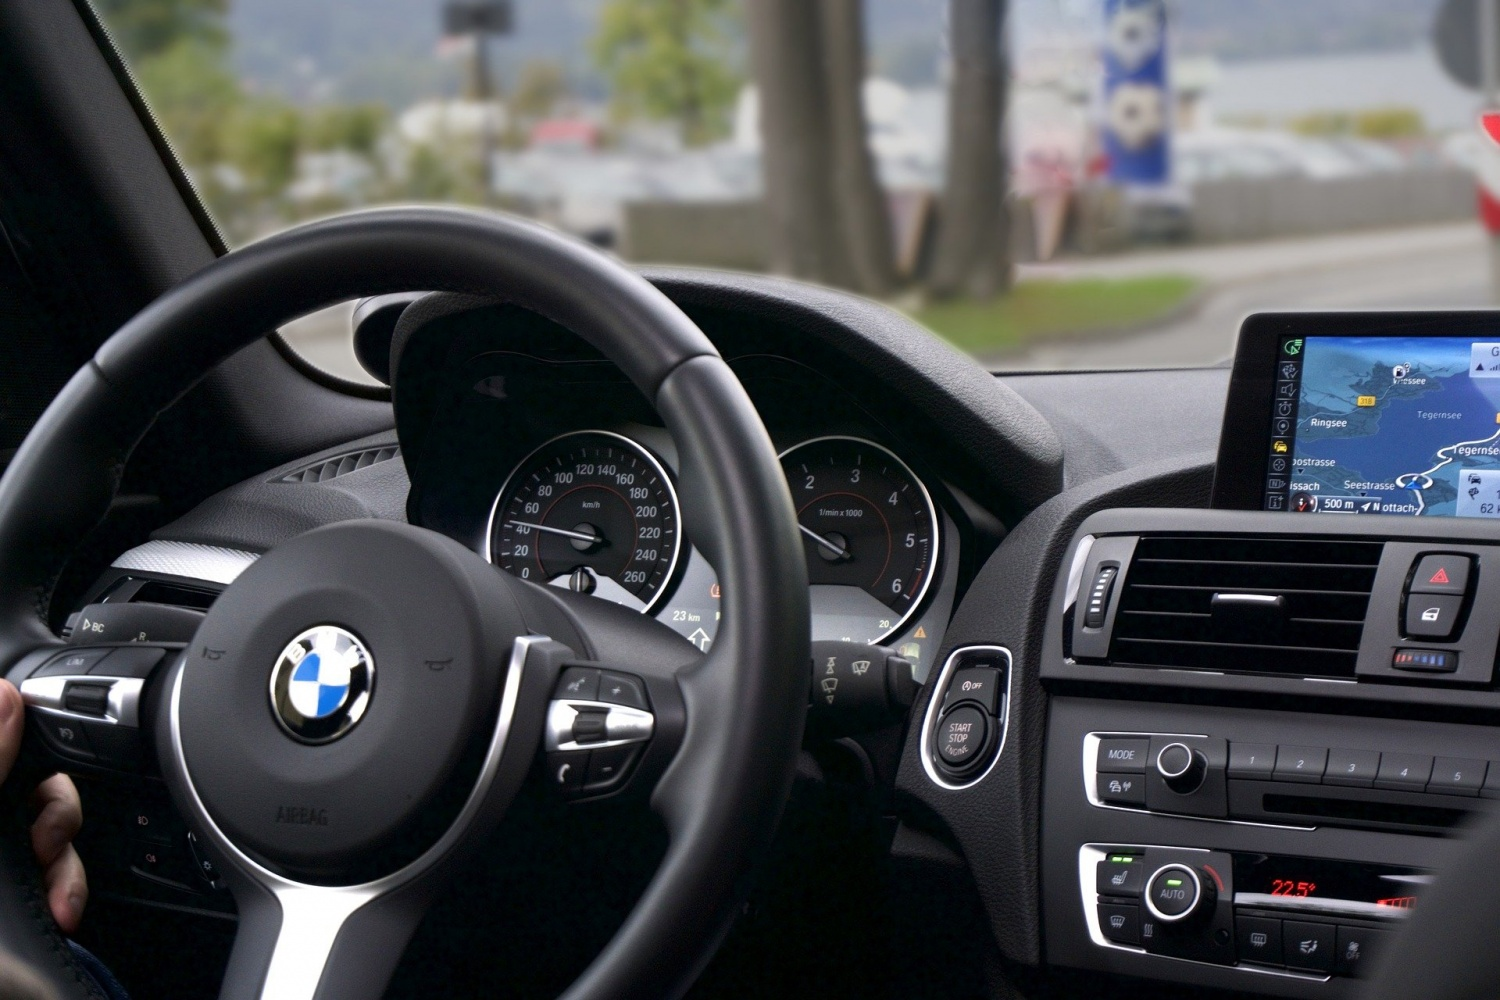 Anti-theft Devices: Does It Have an Impact on Your Car Insurance?